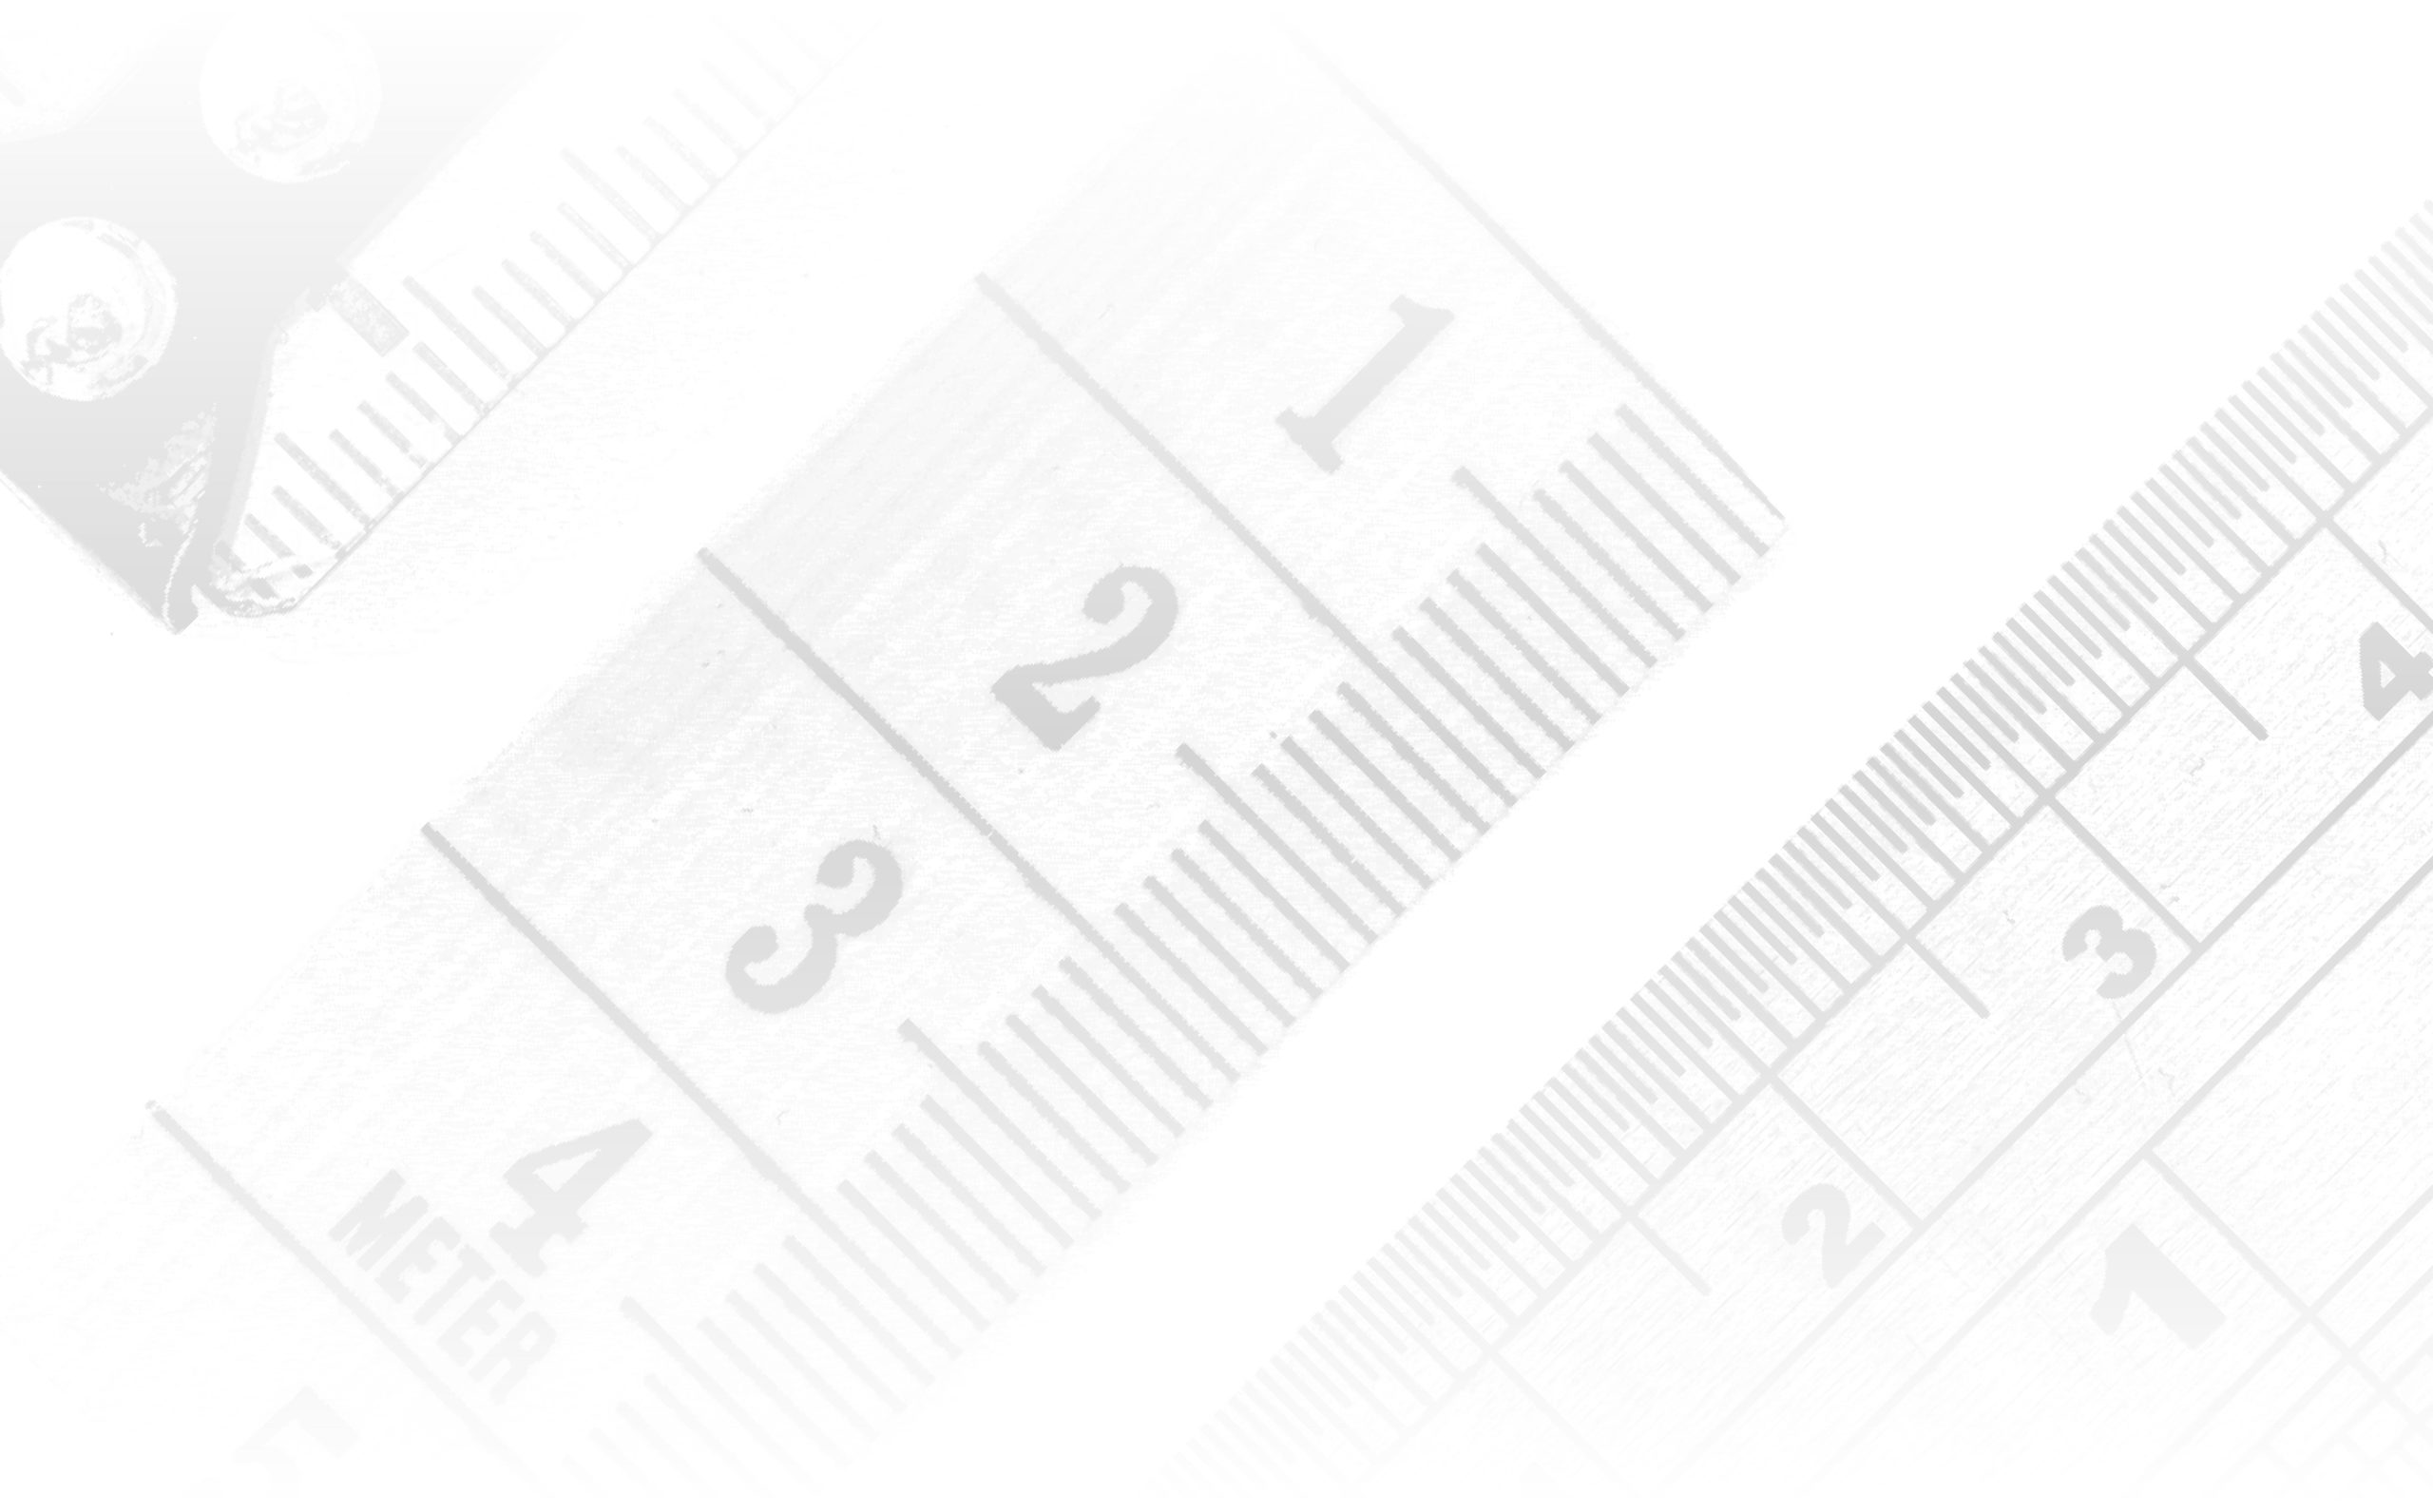 Grayscale rendering of a series of tape measurers.